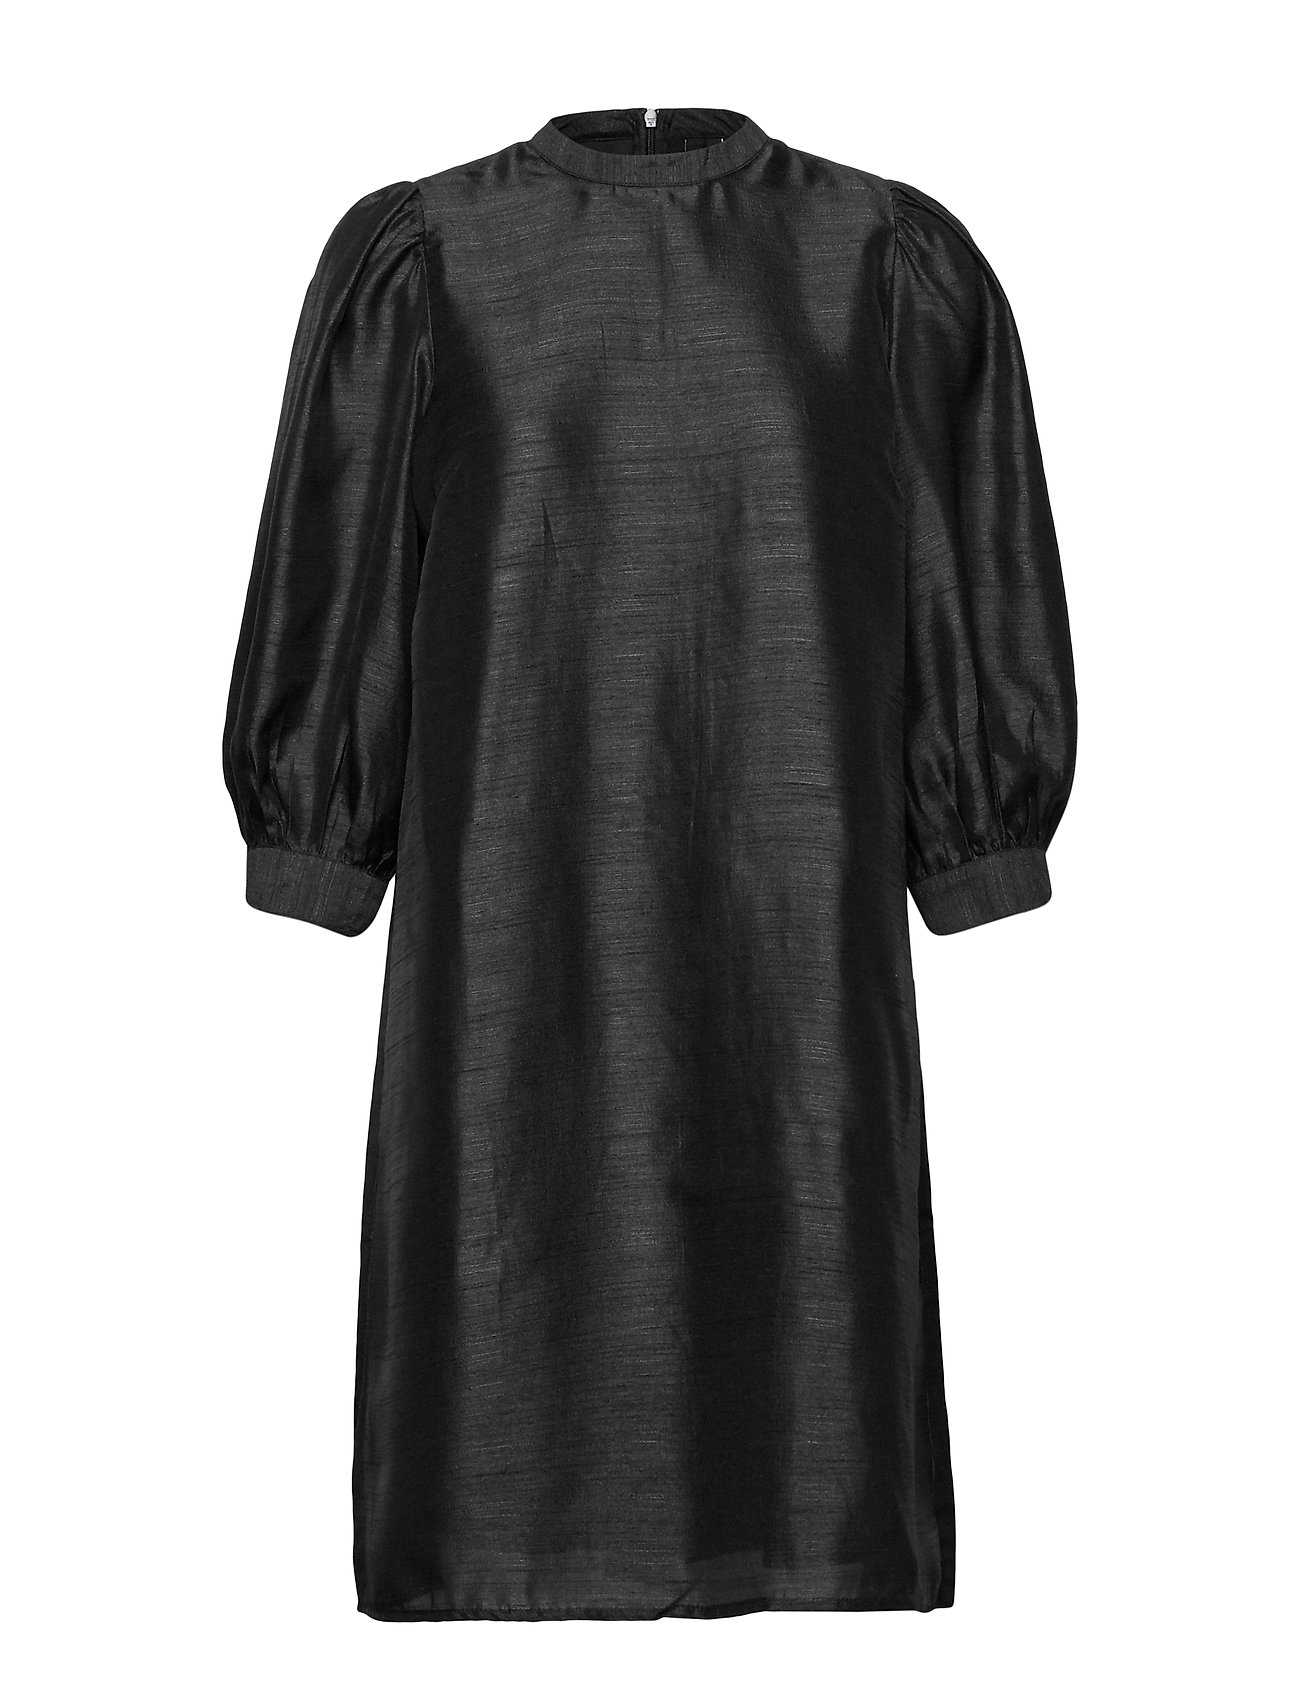 Vero Moda VMANASTACIA 3/4 DRESS SB2 - BLACK